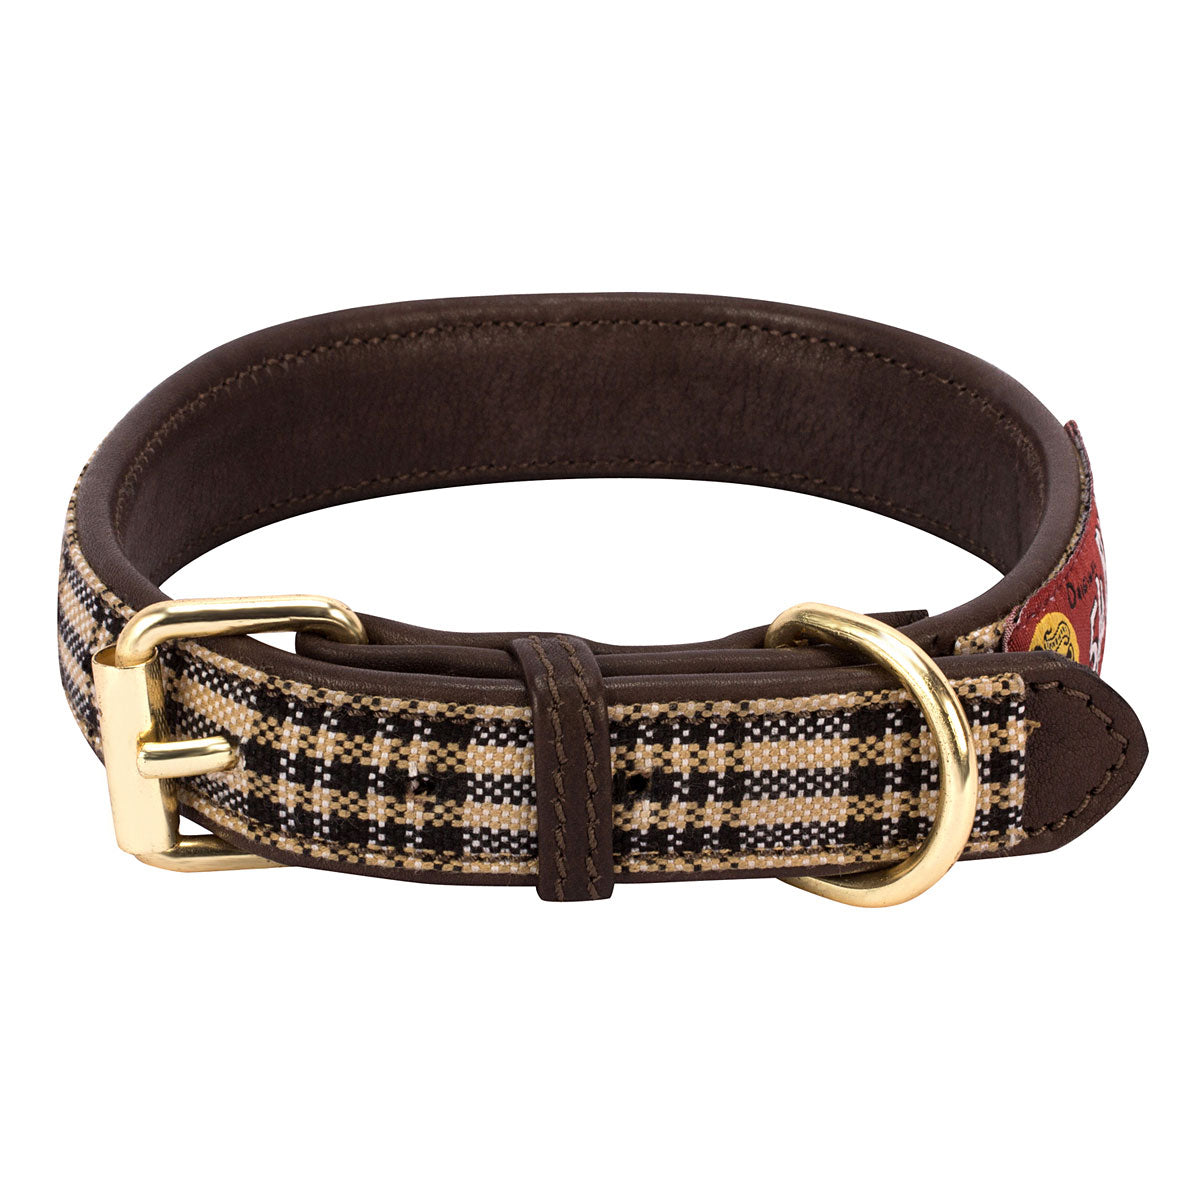 Baker Leather Dog Collar with Baker Plaid Overlay_1466